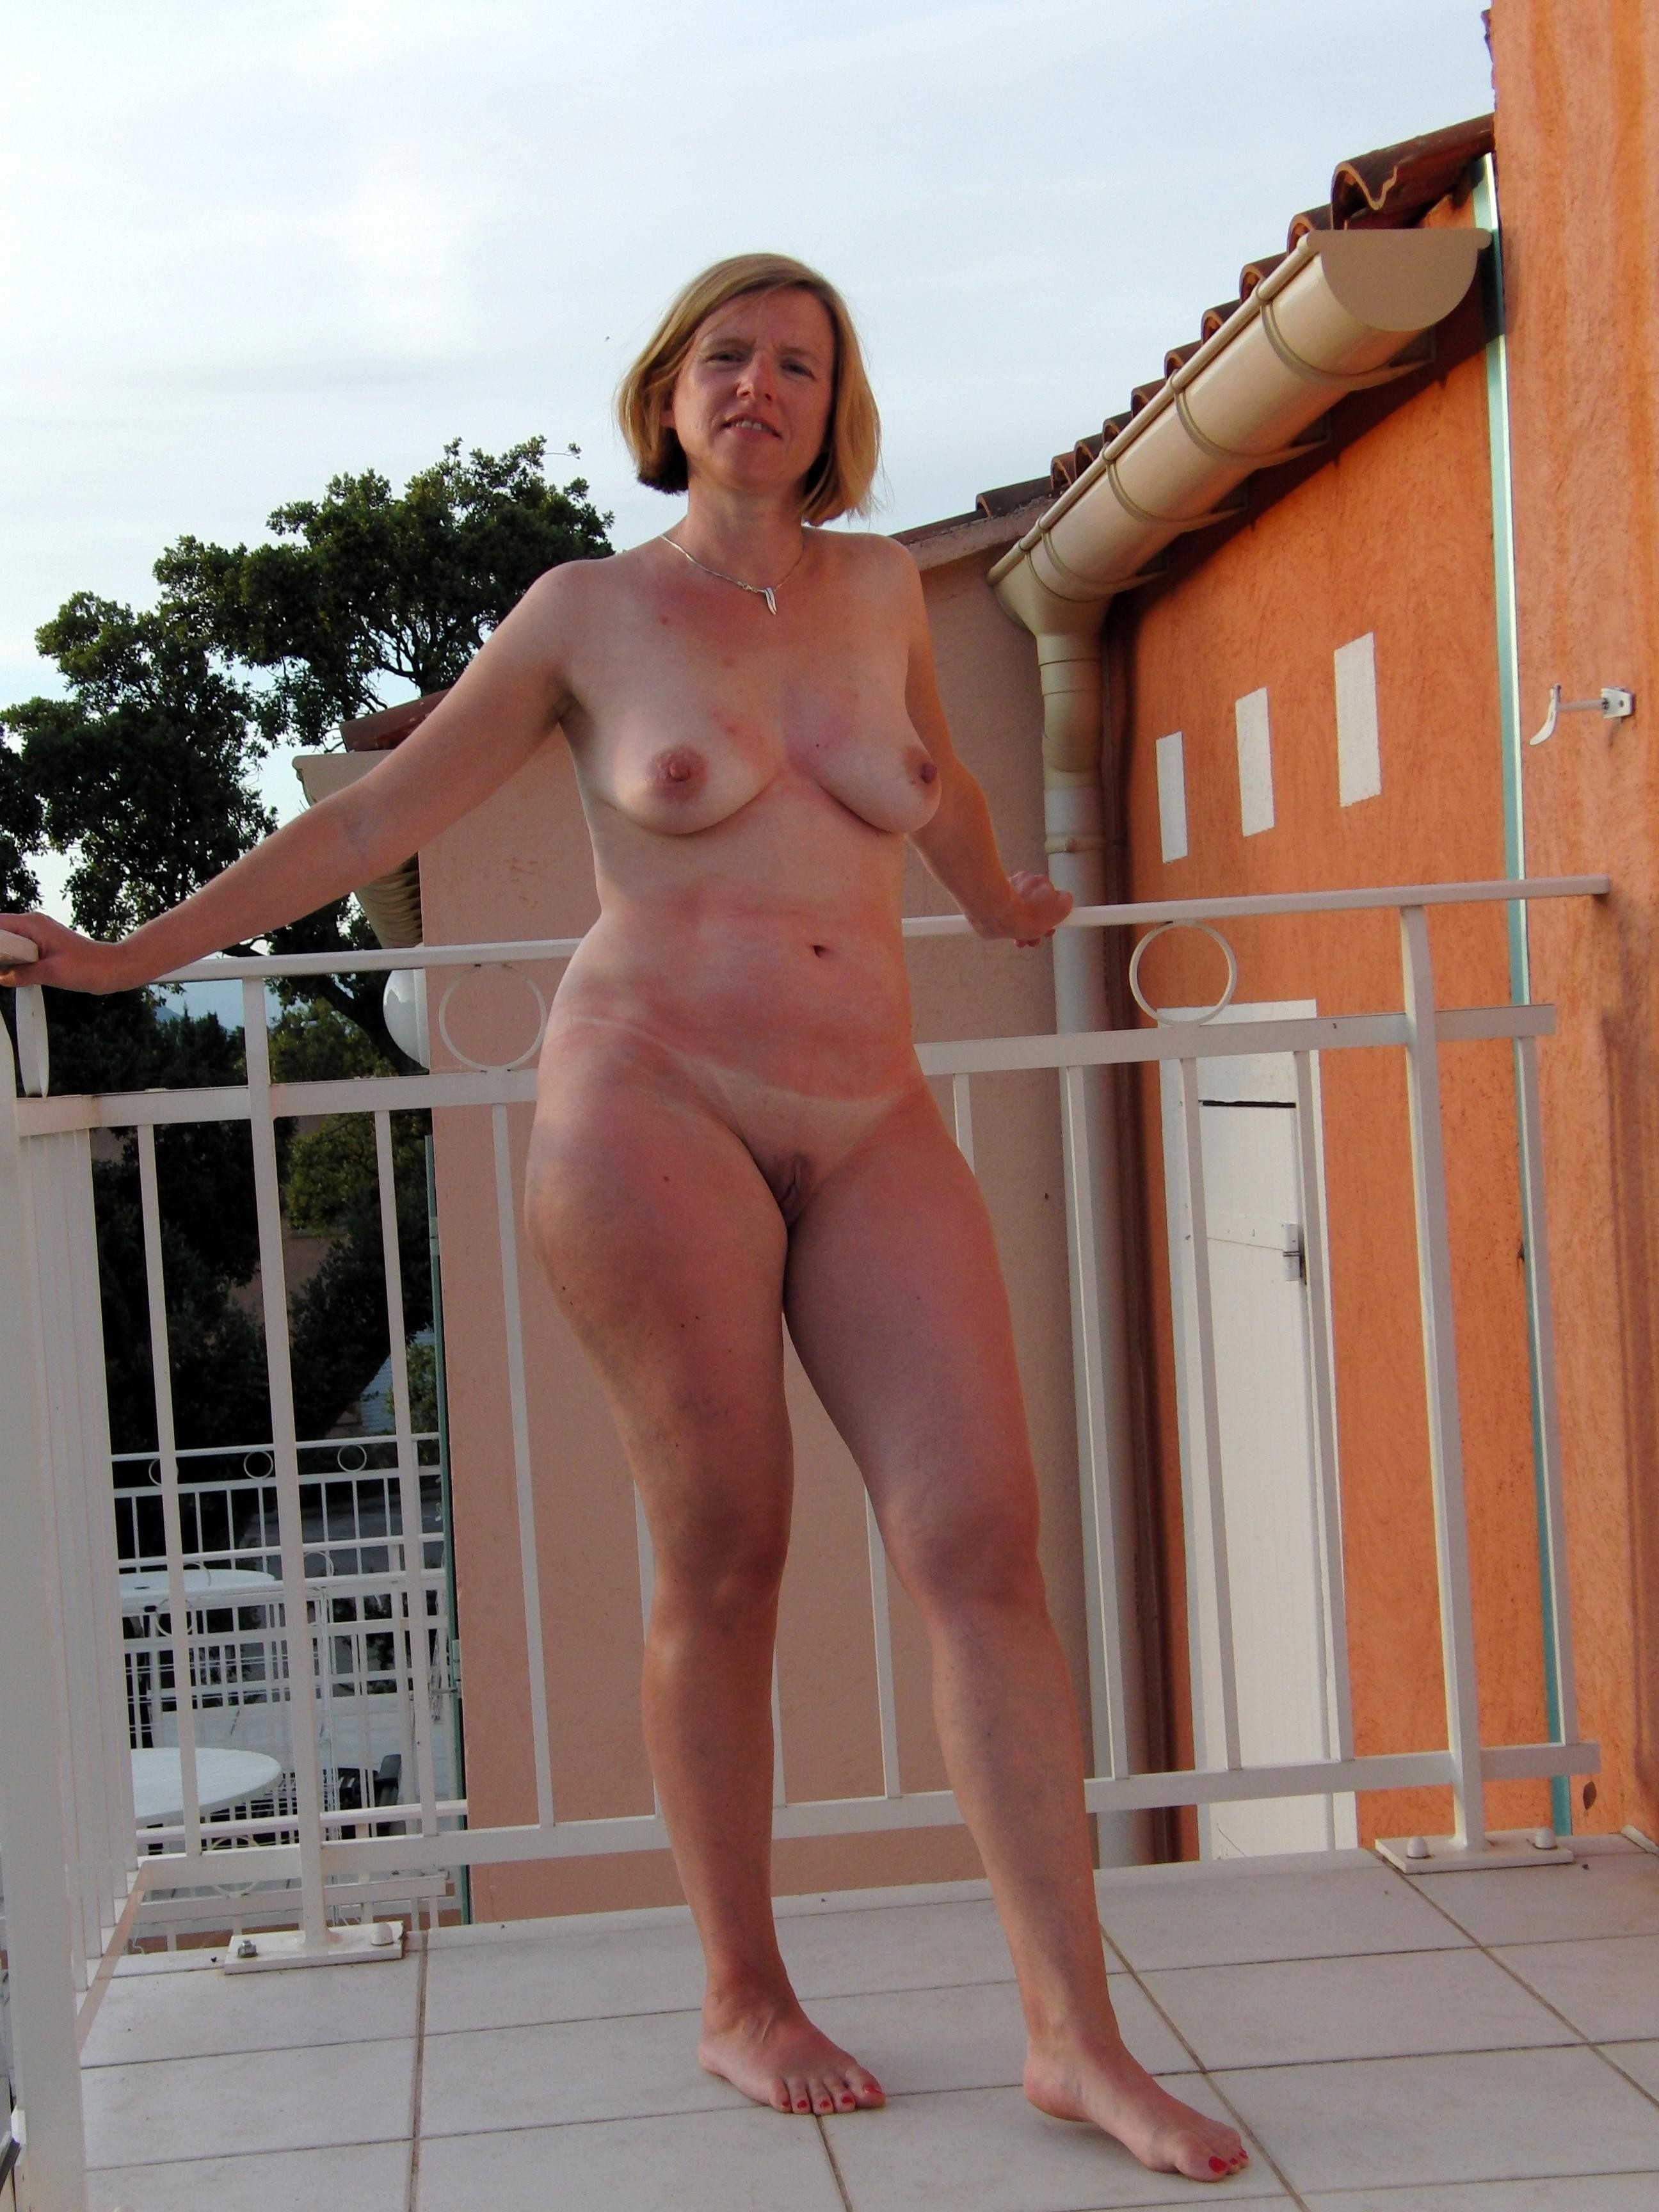 Late, naked milfs on vacation protest